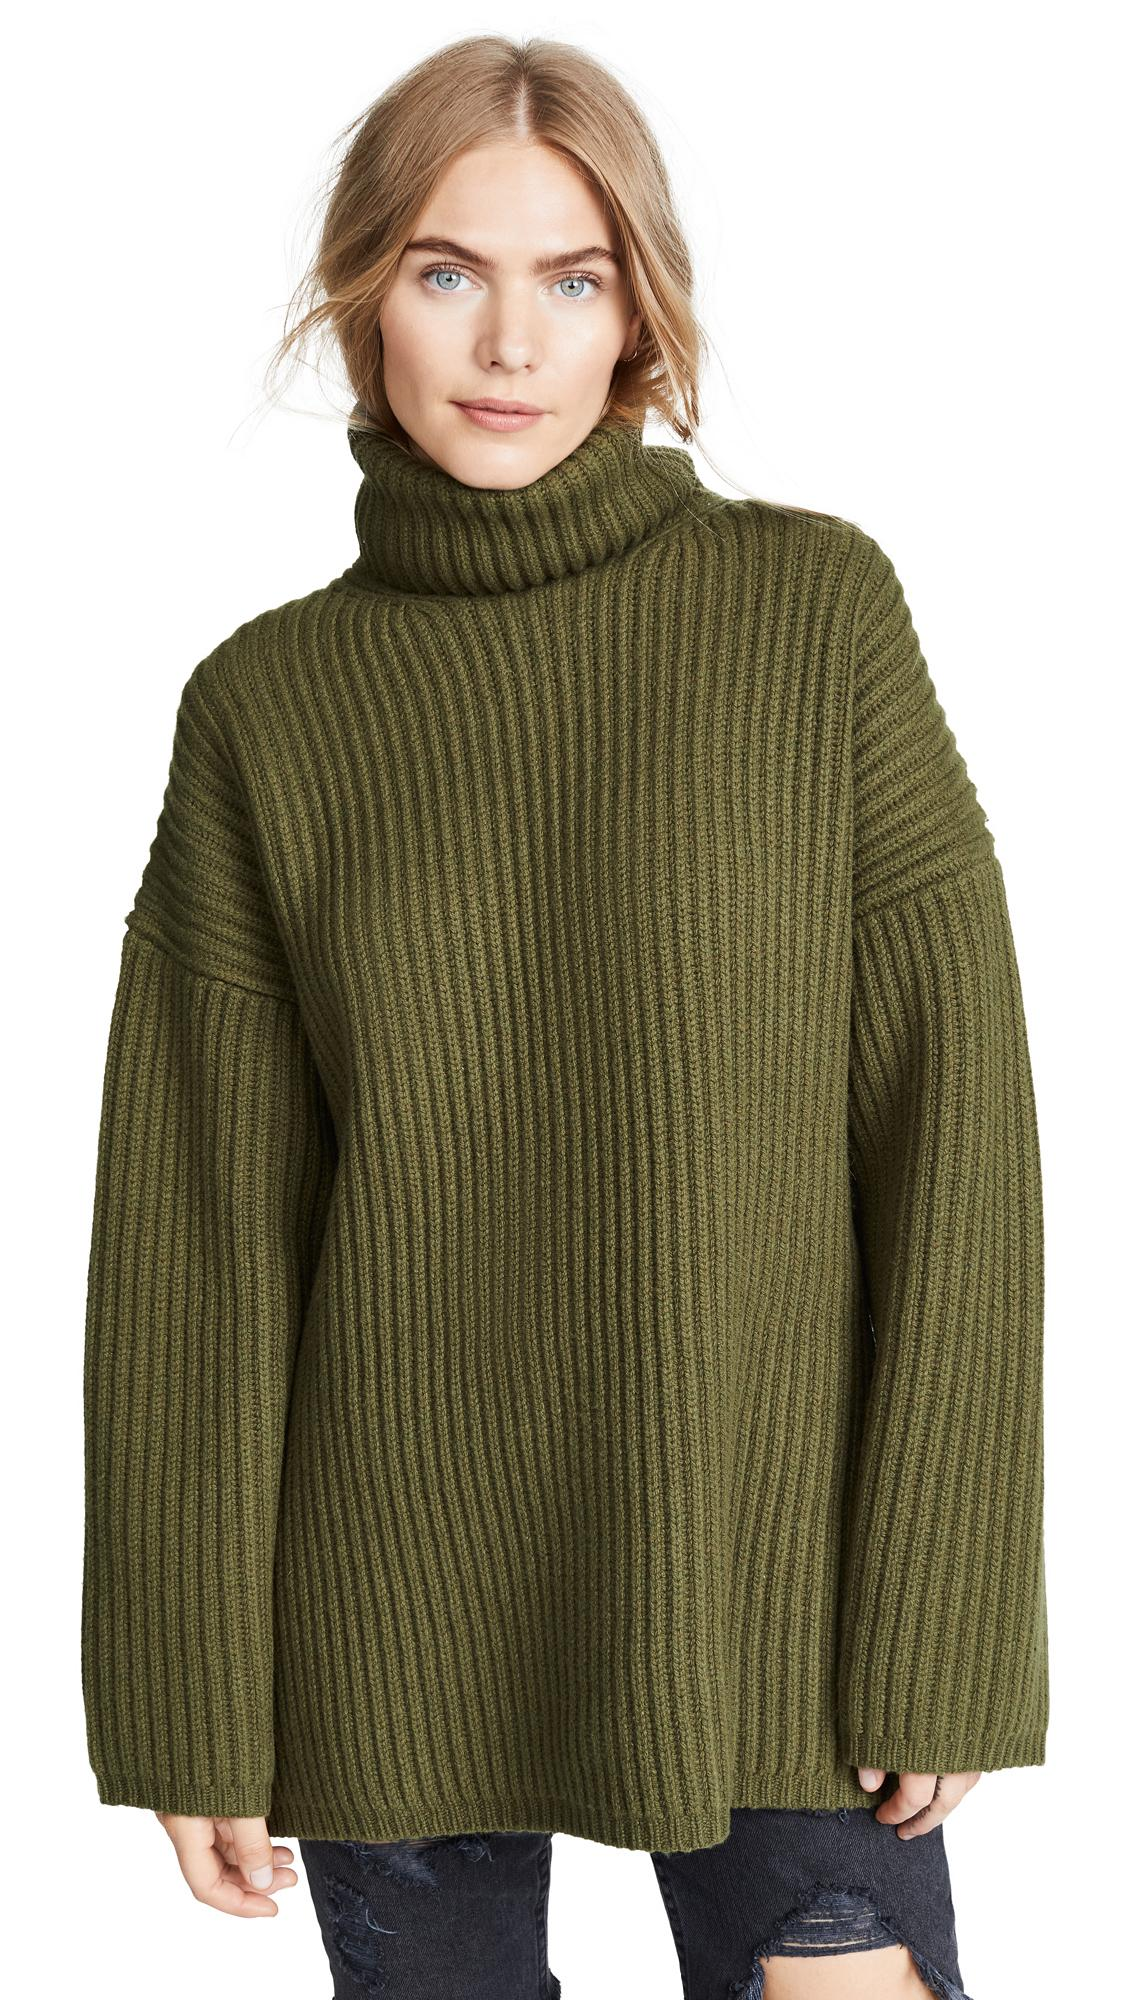 5957a5a91 Acne Studios Ribbed Turtleneck Sweater Khaki Green